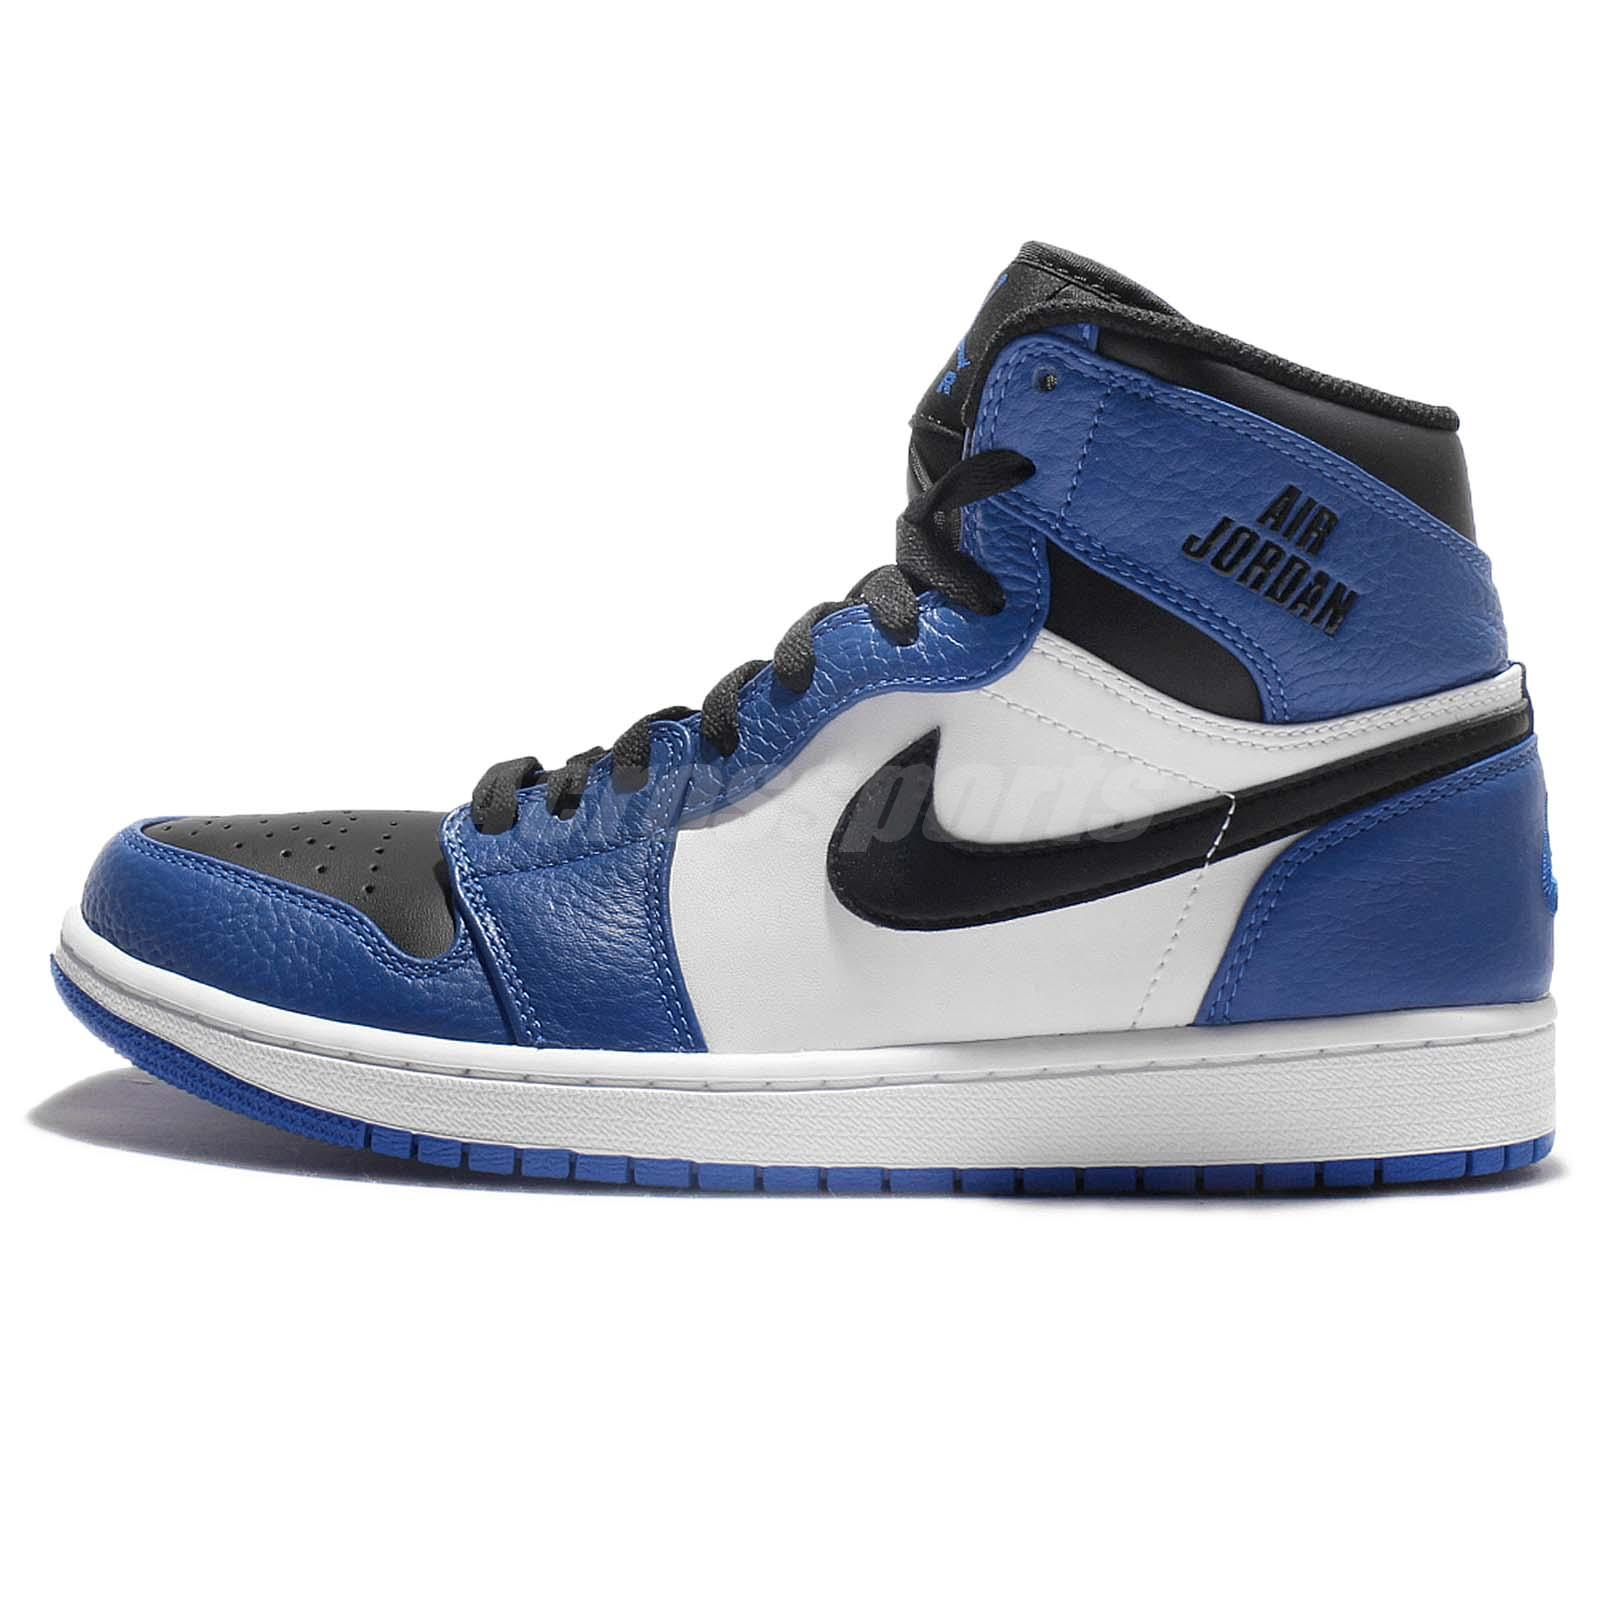 size 40 5f808 15116 ... blue midblack and yellow jordansjordan shoes for cheapfactory outlet  price 4118a c7a67  norway new nike air jordan retro 1 c4459 6b036